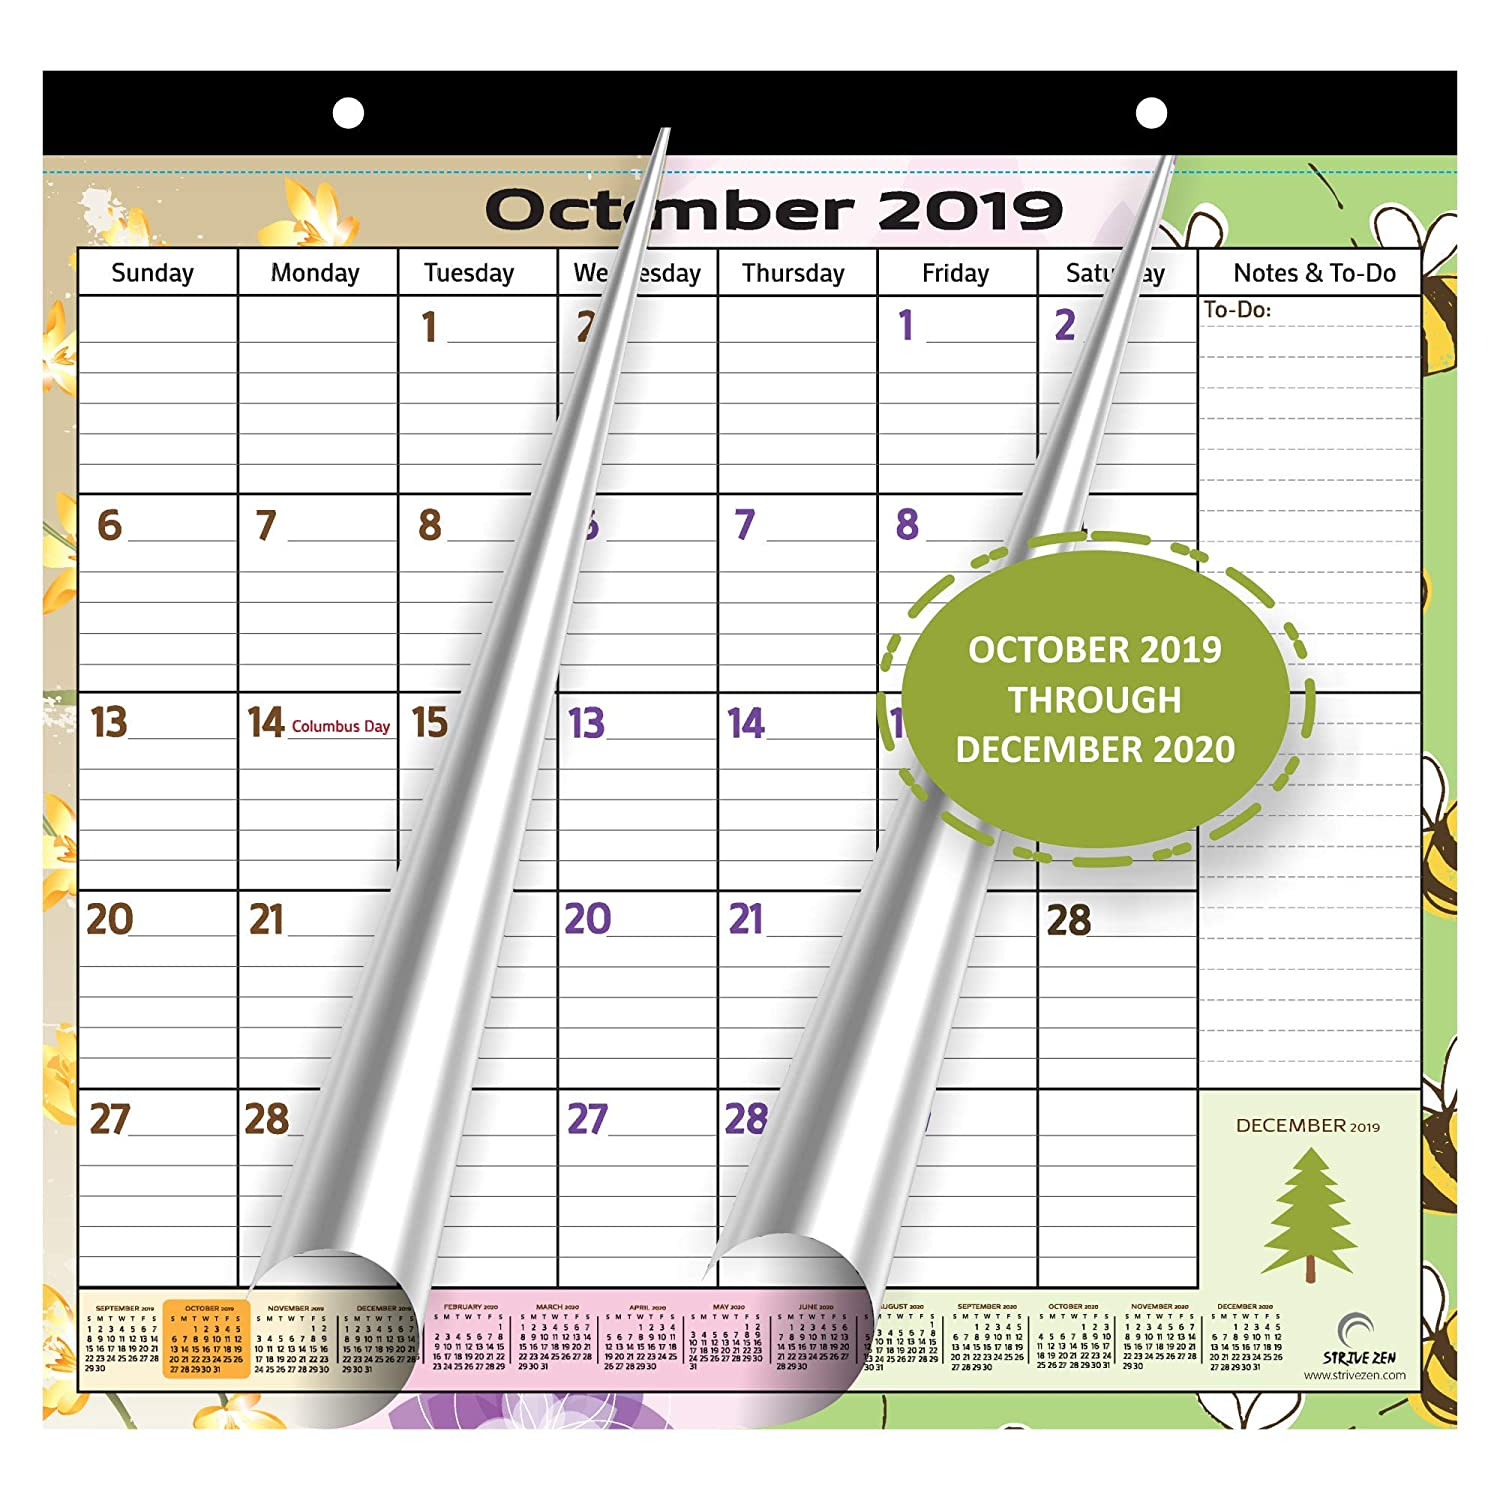 Magnetic Fridge Calendar 2019-2020 for by StriveZen, Monthly October 2019 -December 2020, Strong Magnets for Refrigerator, 10x10 Inch, Academic, Desktop, Gift, Teacher Family Busy Mom Office